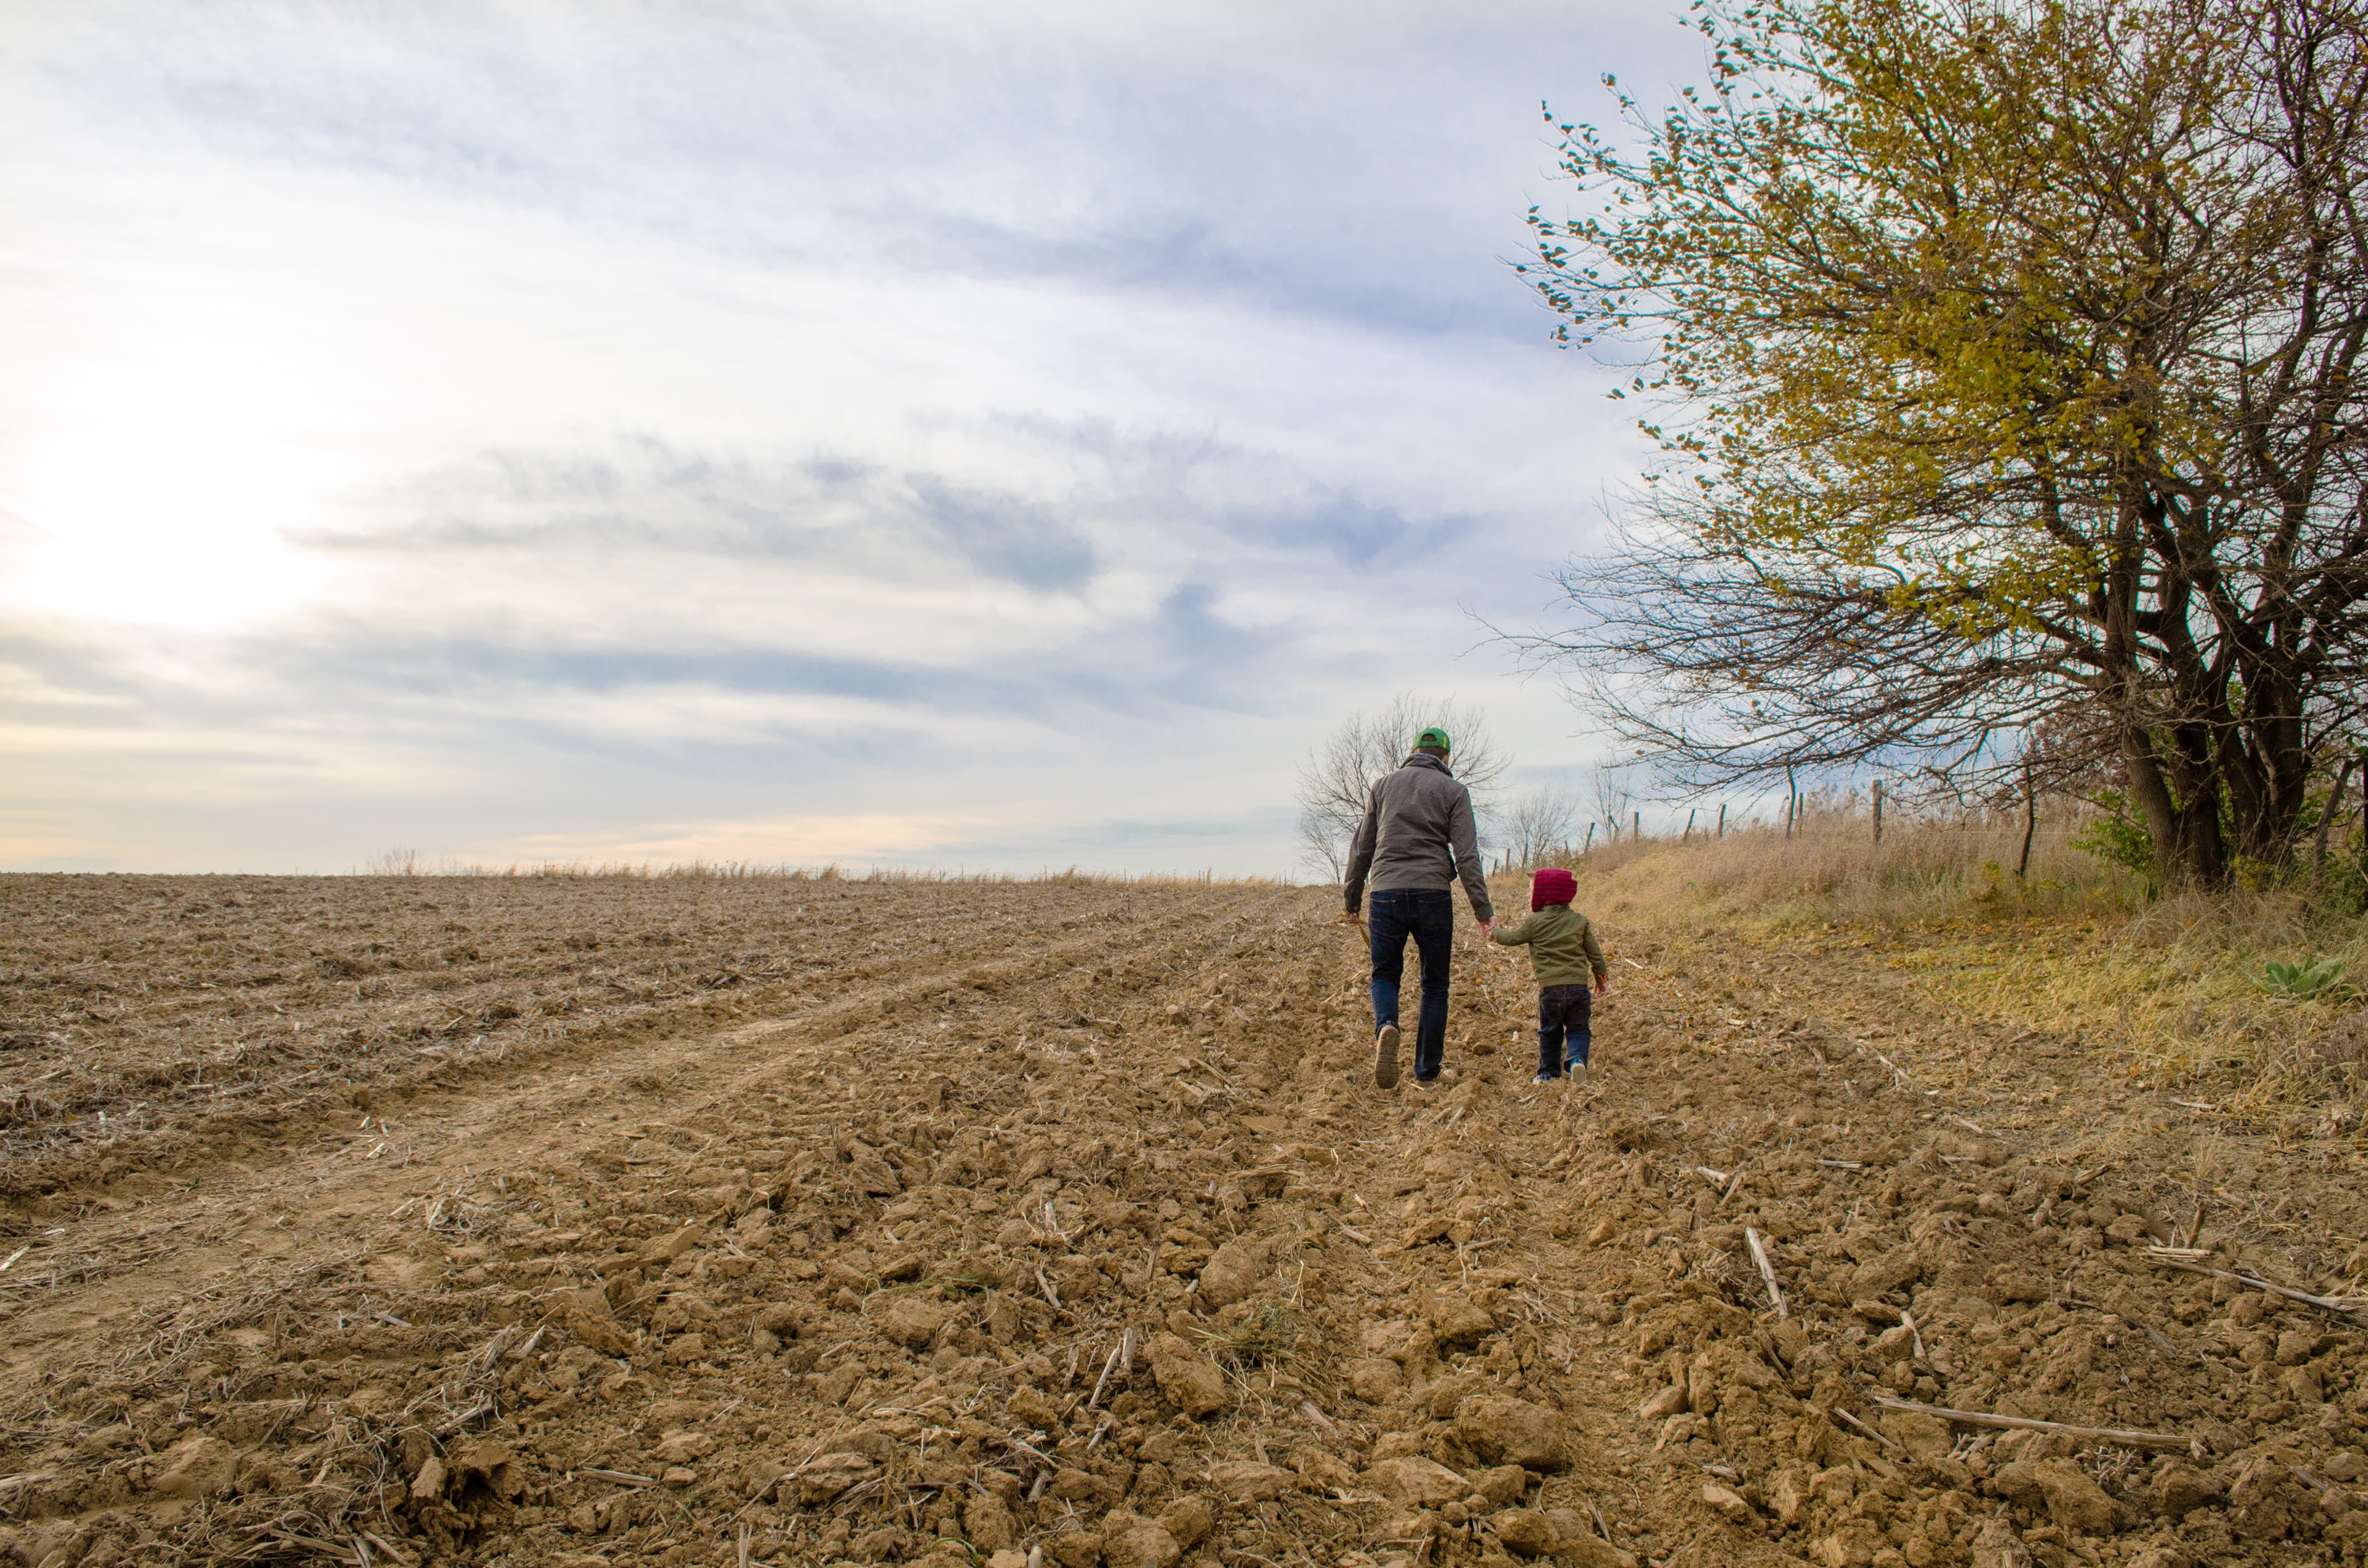 A dad walking with his kid in a field.